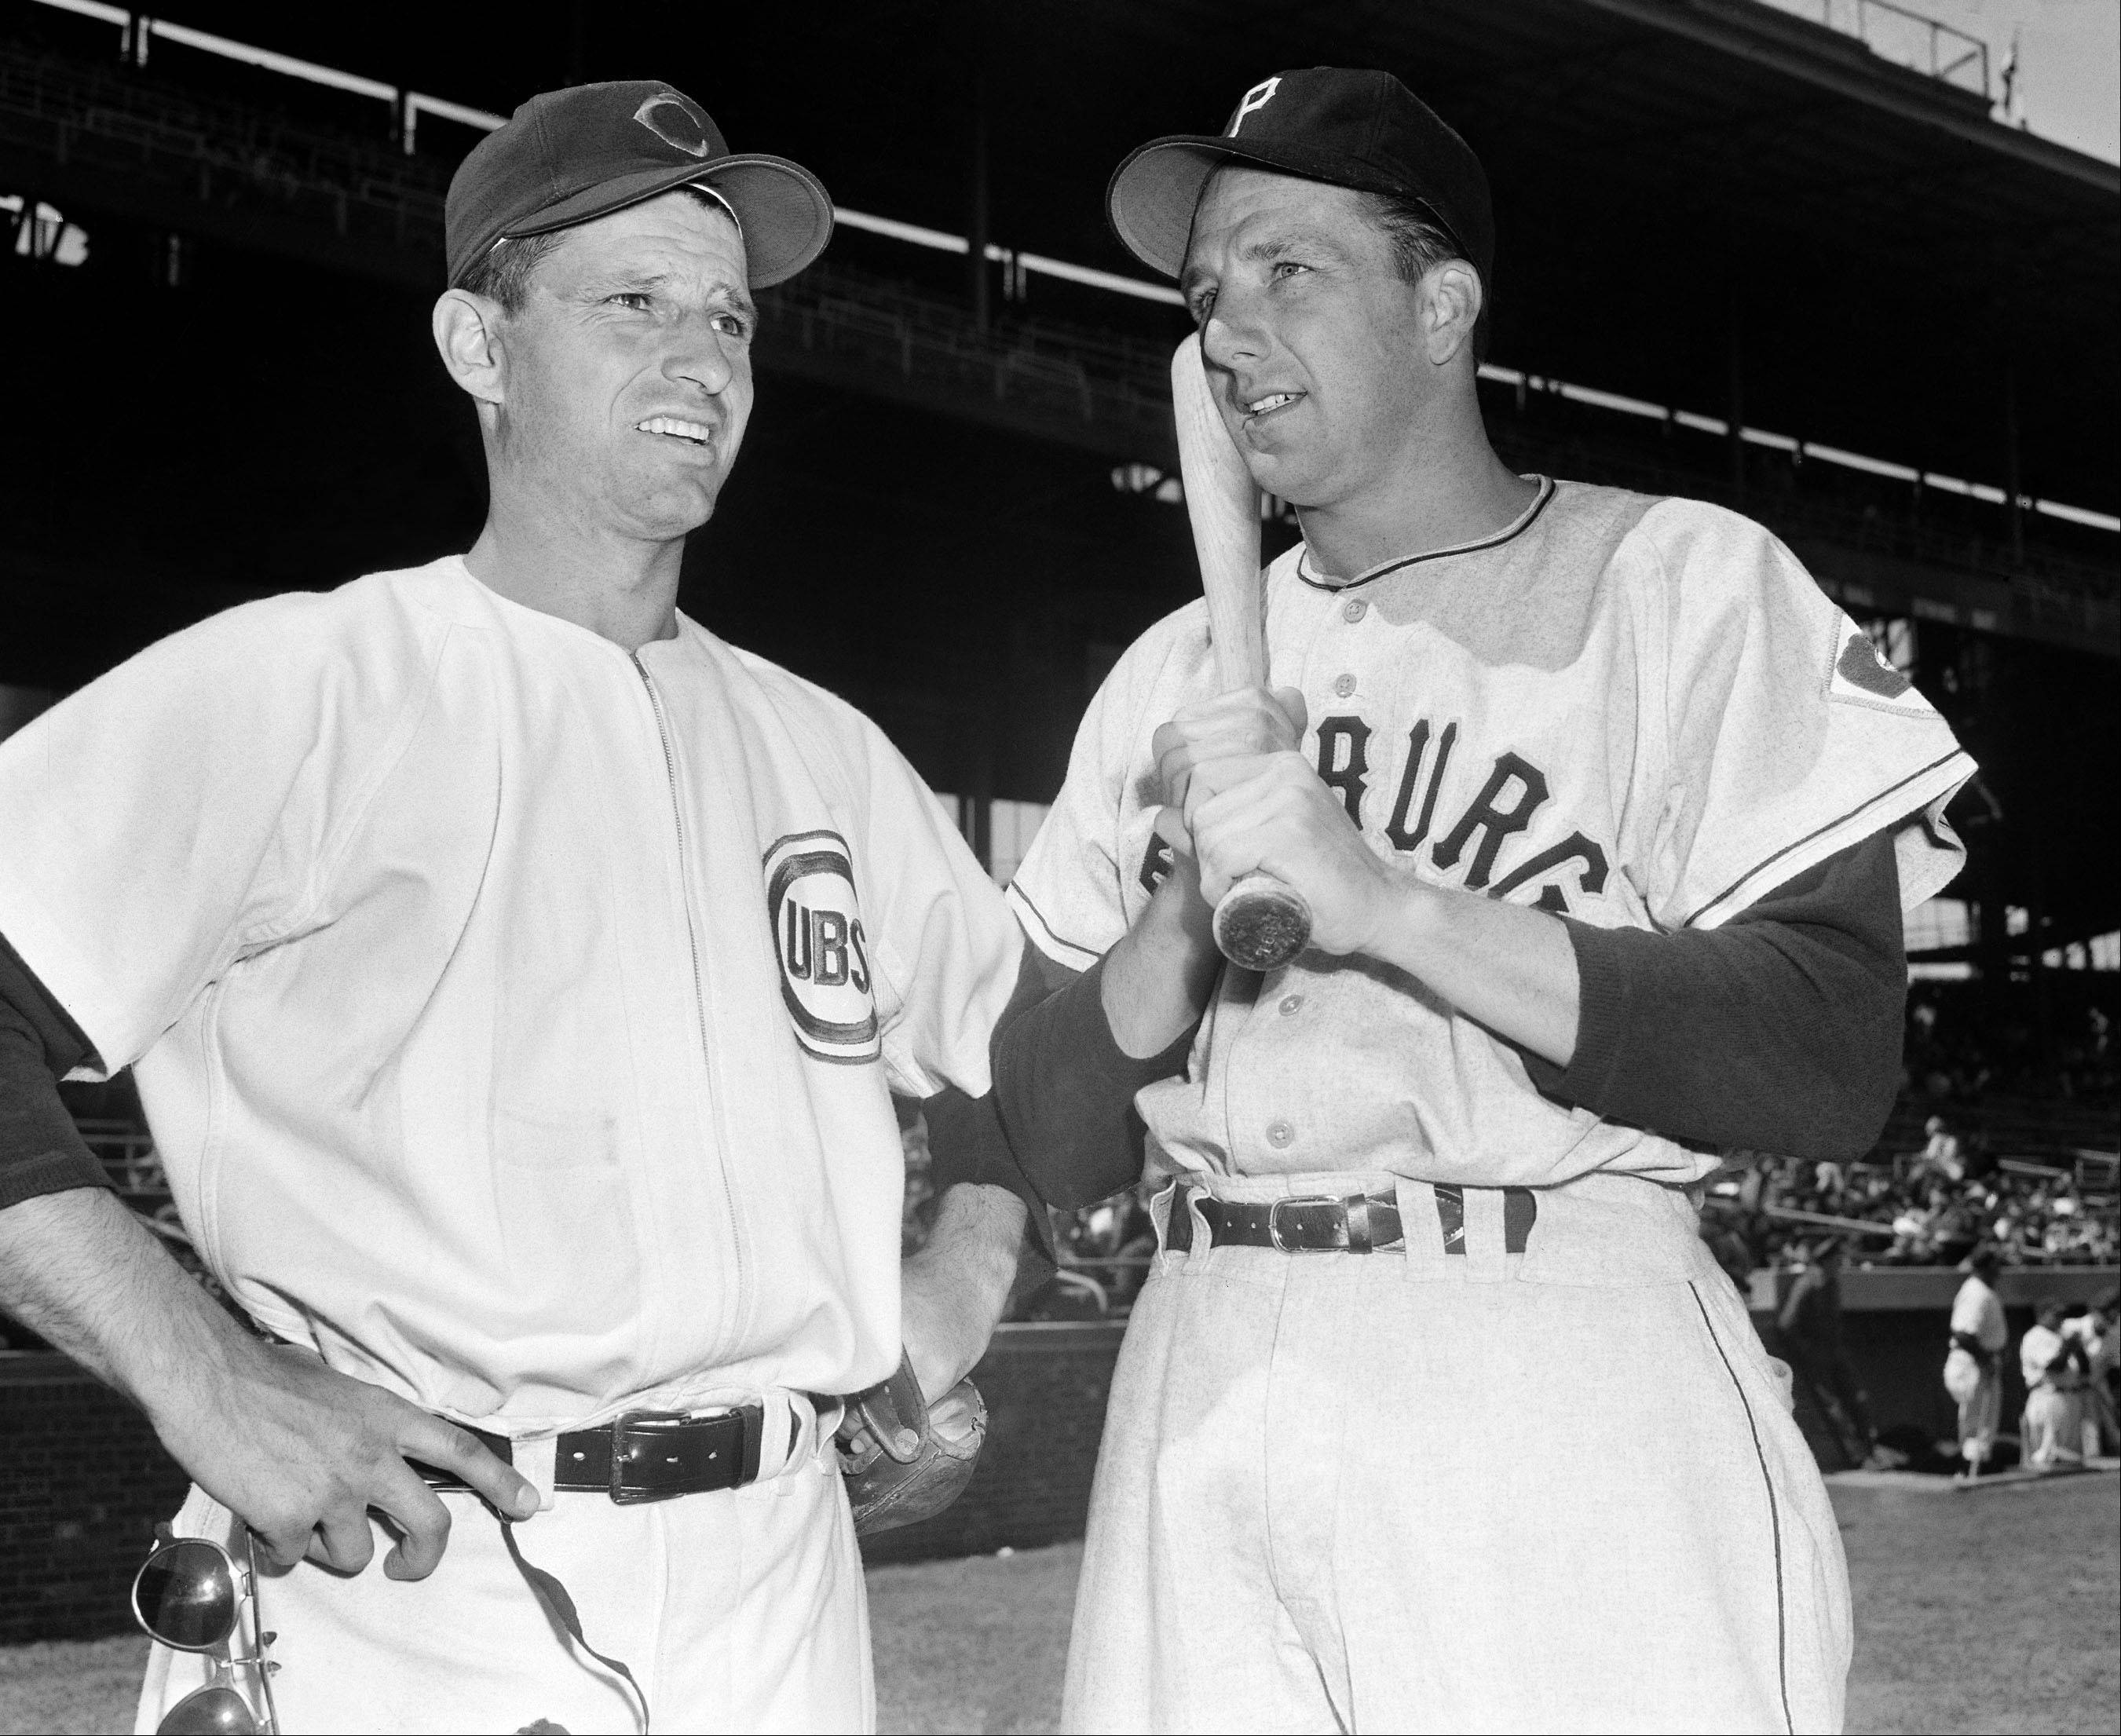 As the star player for a lousy Cubs team in 1951, Andy Pafko chats with fellow slugger Ralph Kiner of the Pirates in 1951 at Wrigley Field. Pafko was traded later that season to the Brooklyn Dodgers.